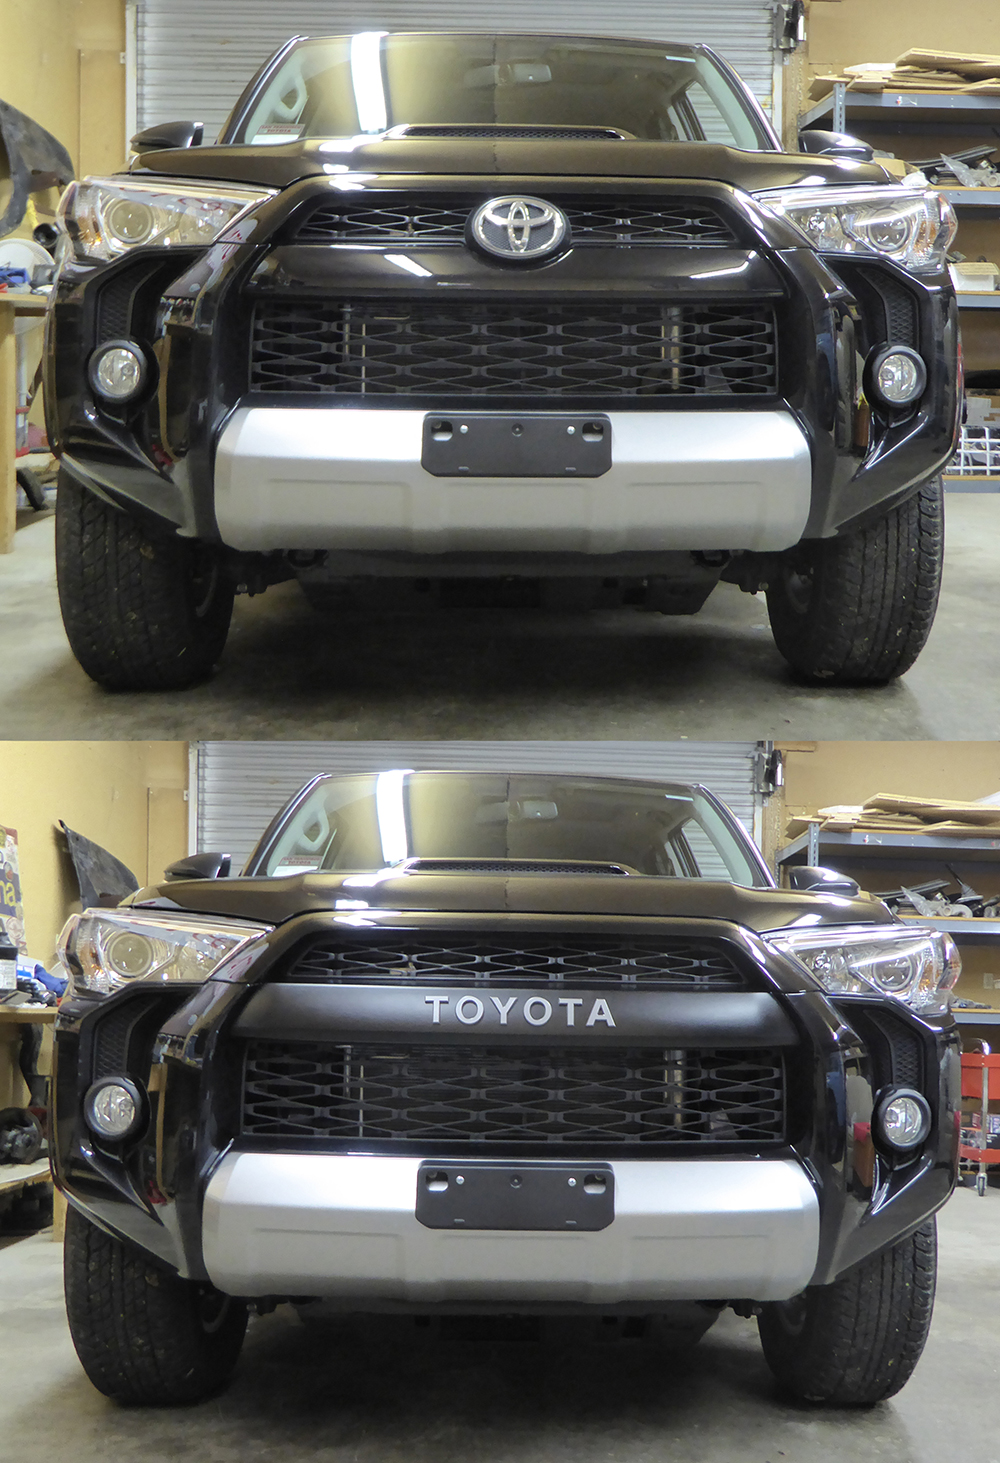 Trd Pro 4runner Grill Swap Kit 5th Gen 2016 The